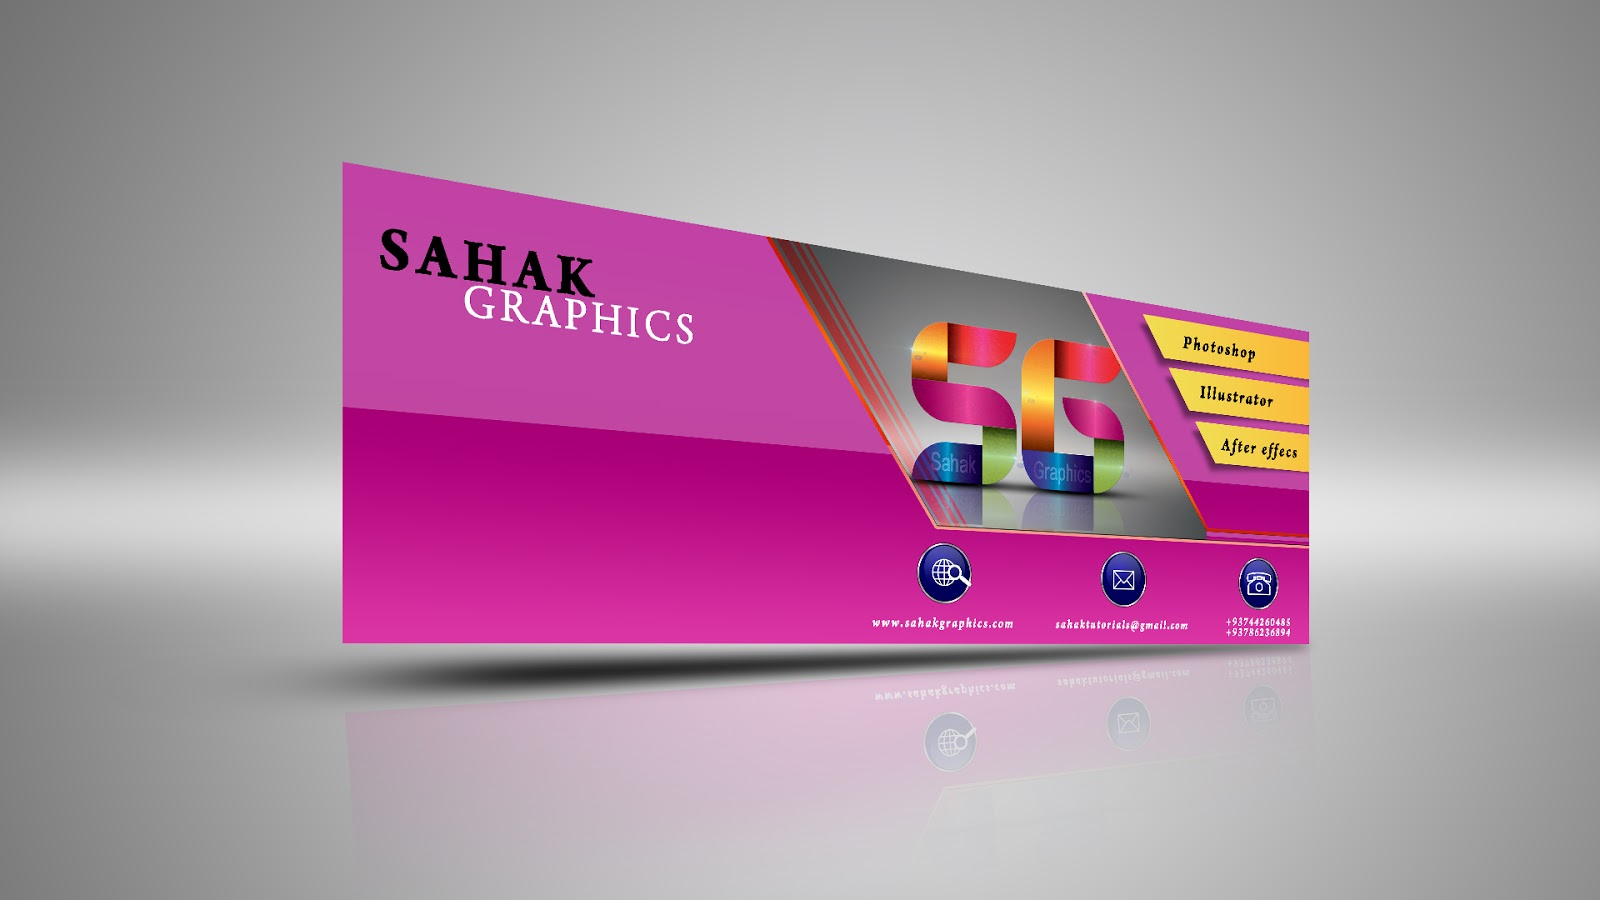 Free Download Facebook Cover Photo Psd Template Sahak Graphics